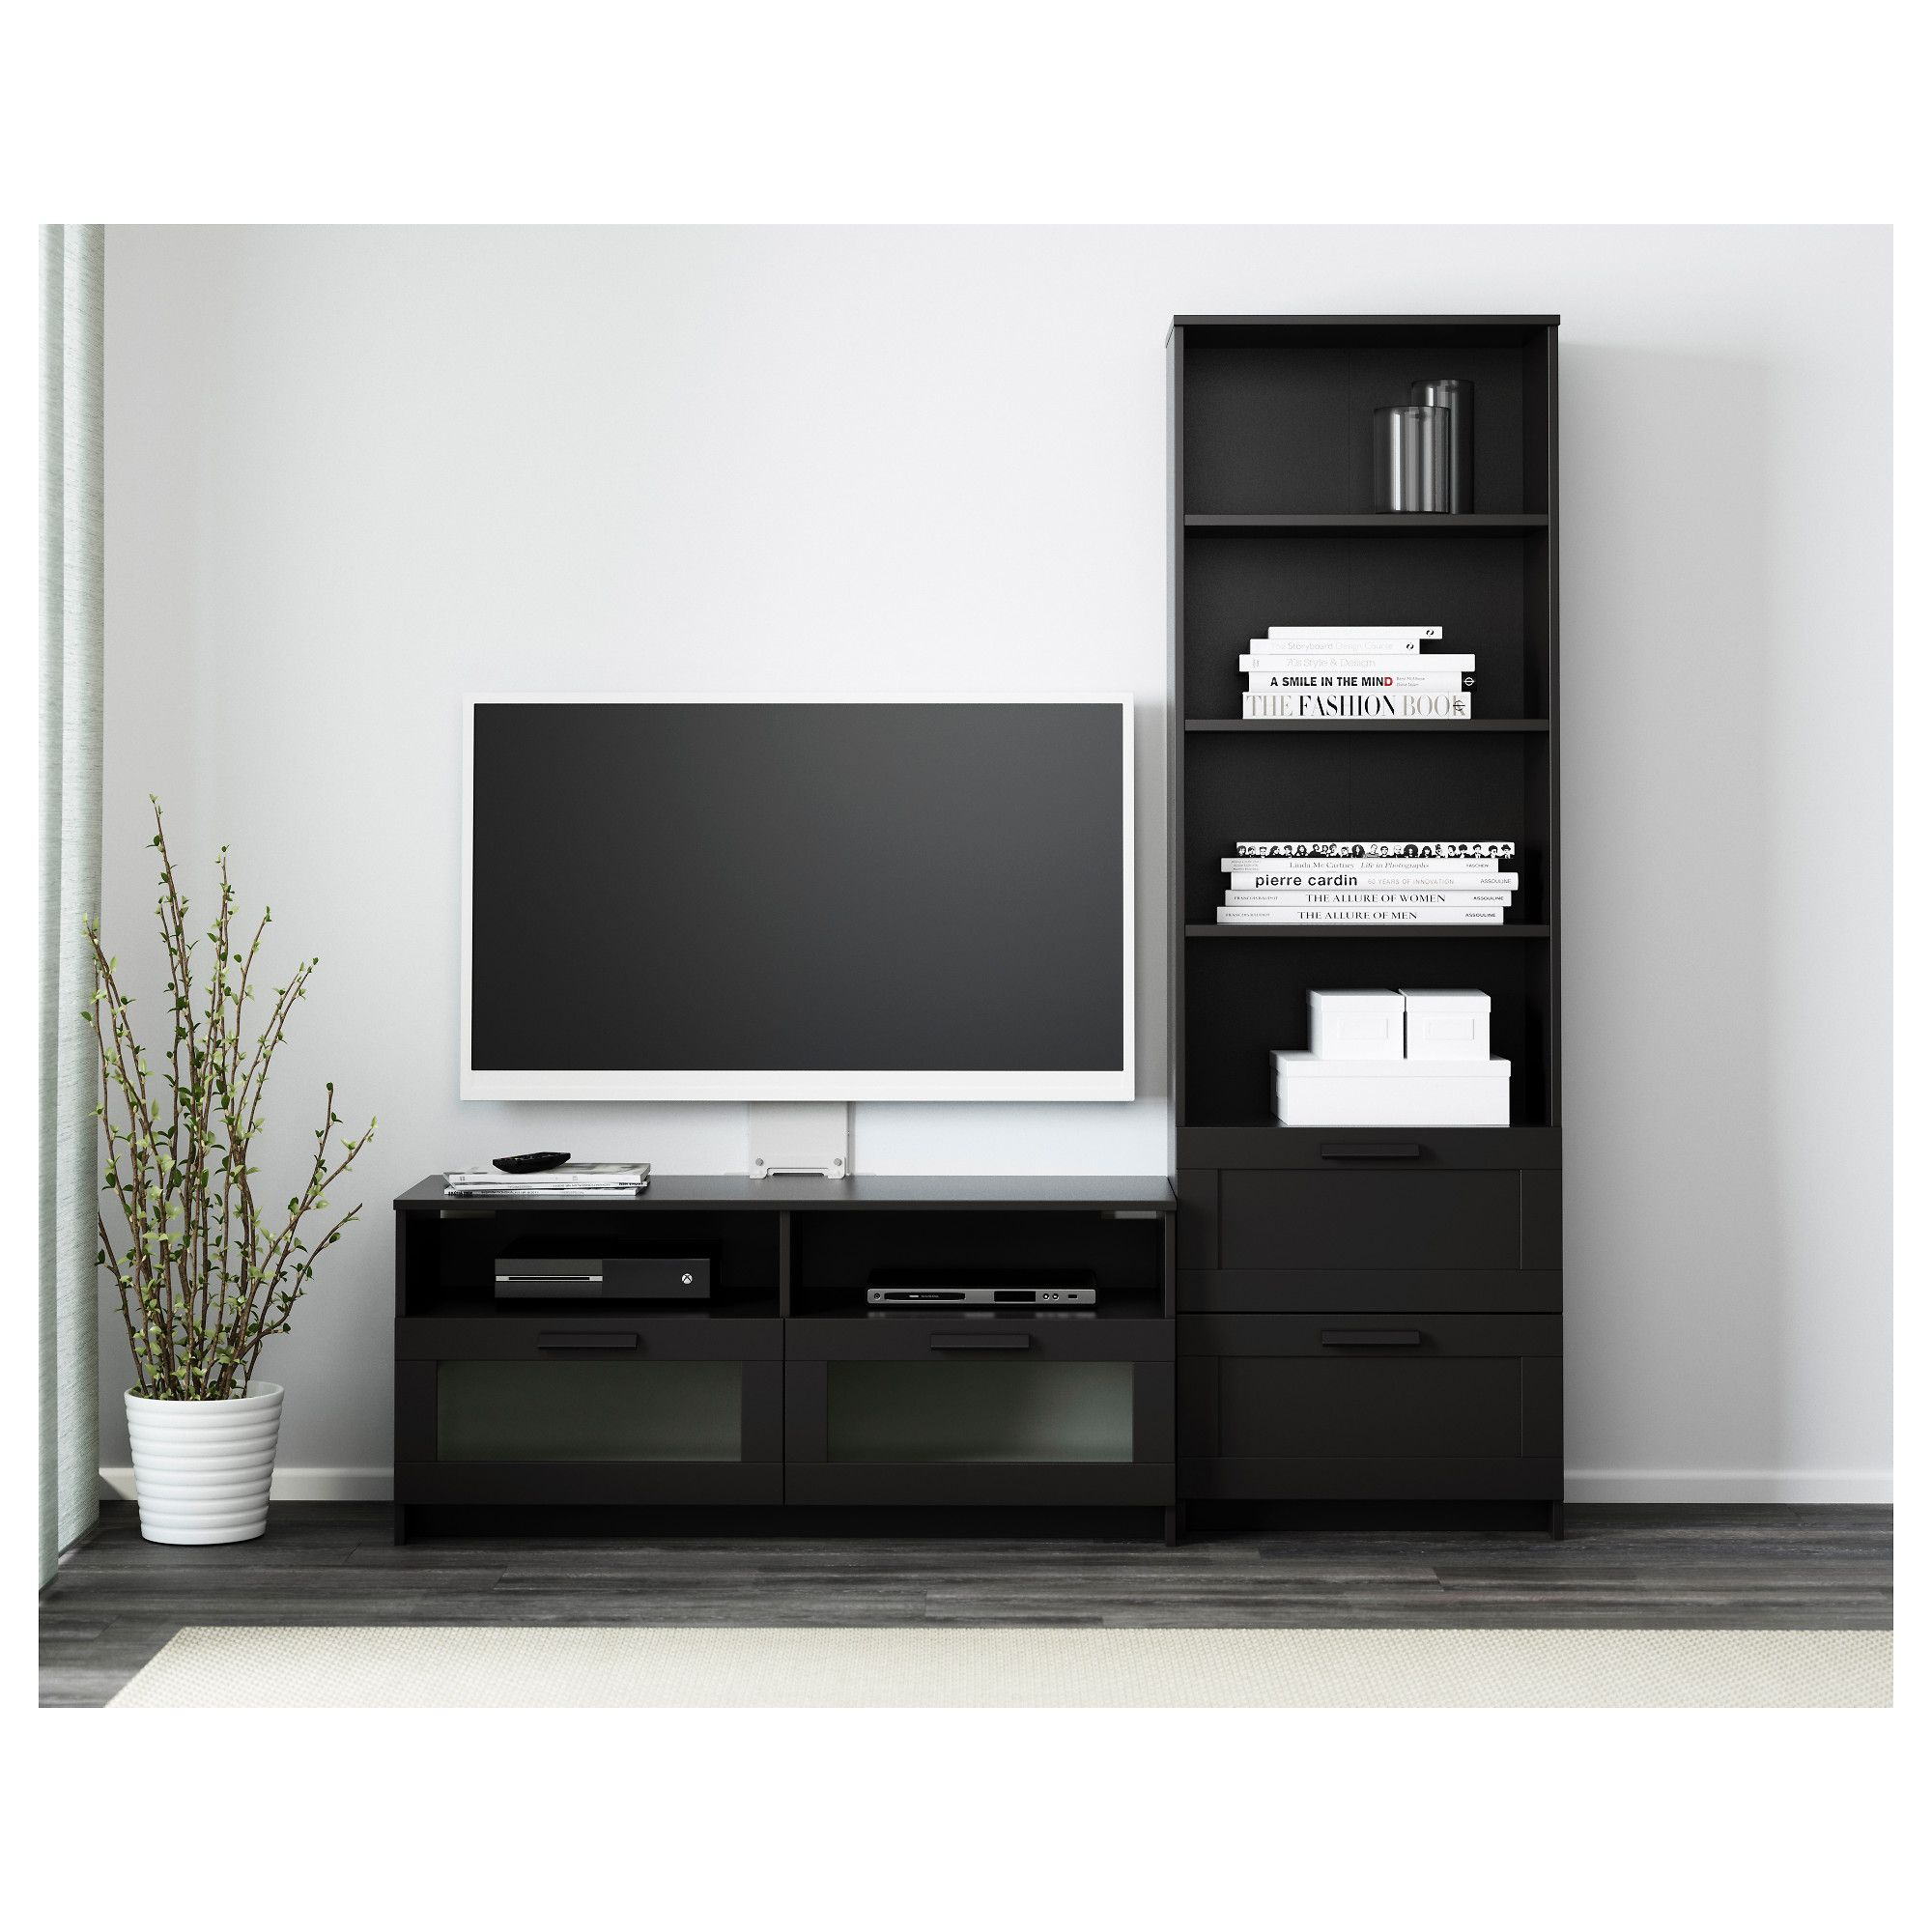 Brimnes Tv Storage Combination Black 70 7 8x16 1 8x74 3 4